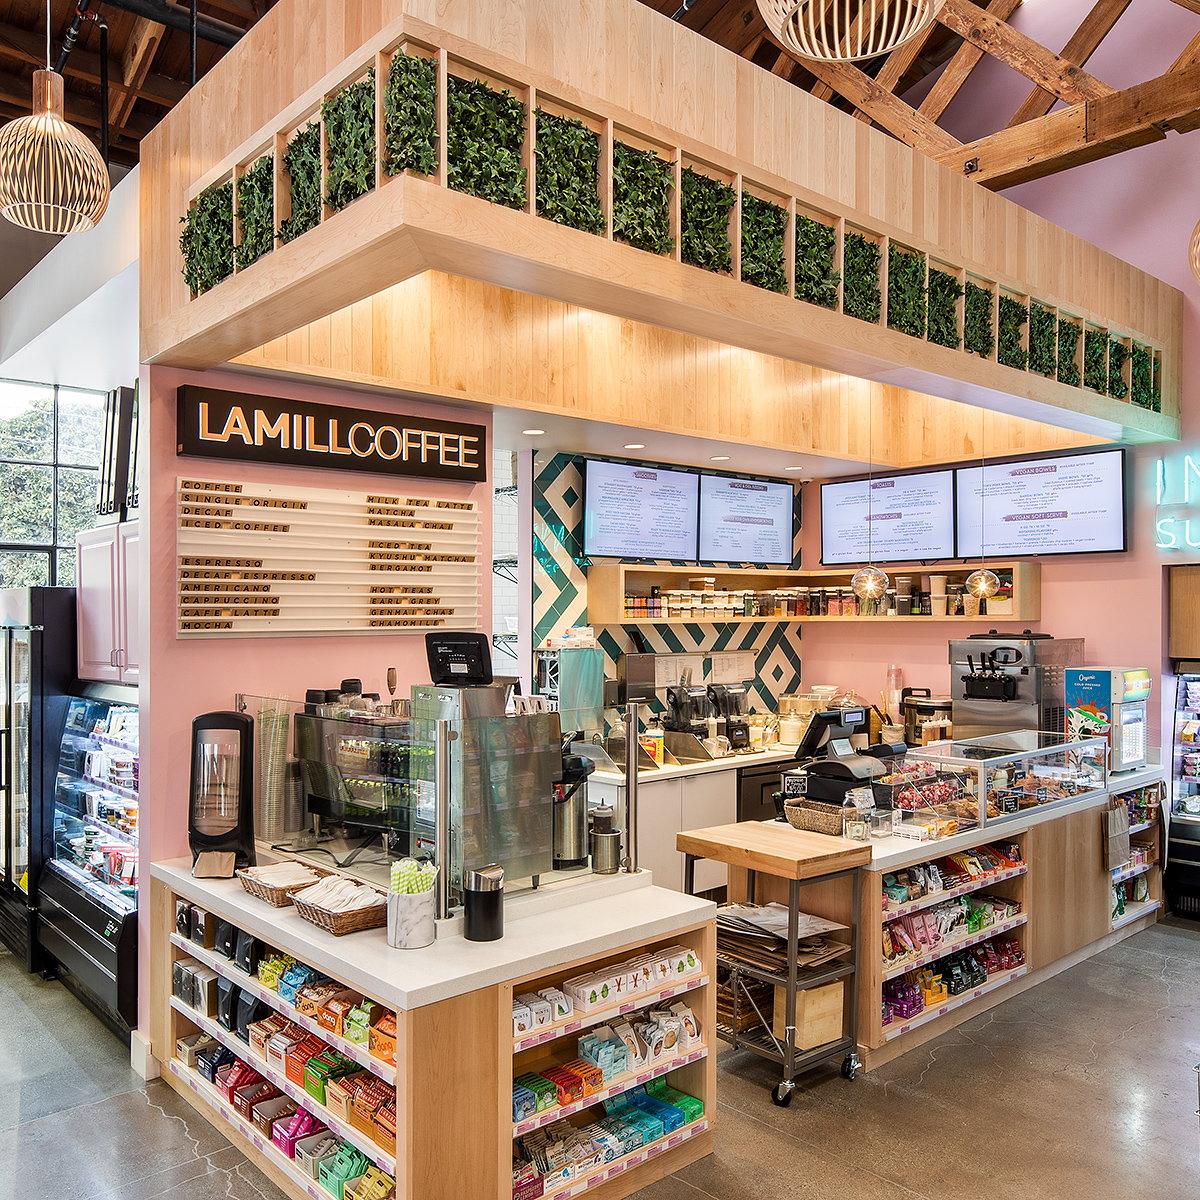 MBH Architects Designs Tropically-Inspired Indie Superette Market in San Francisco